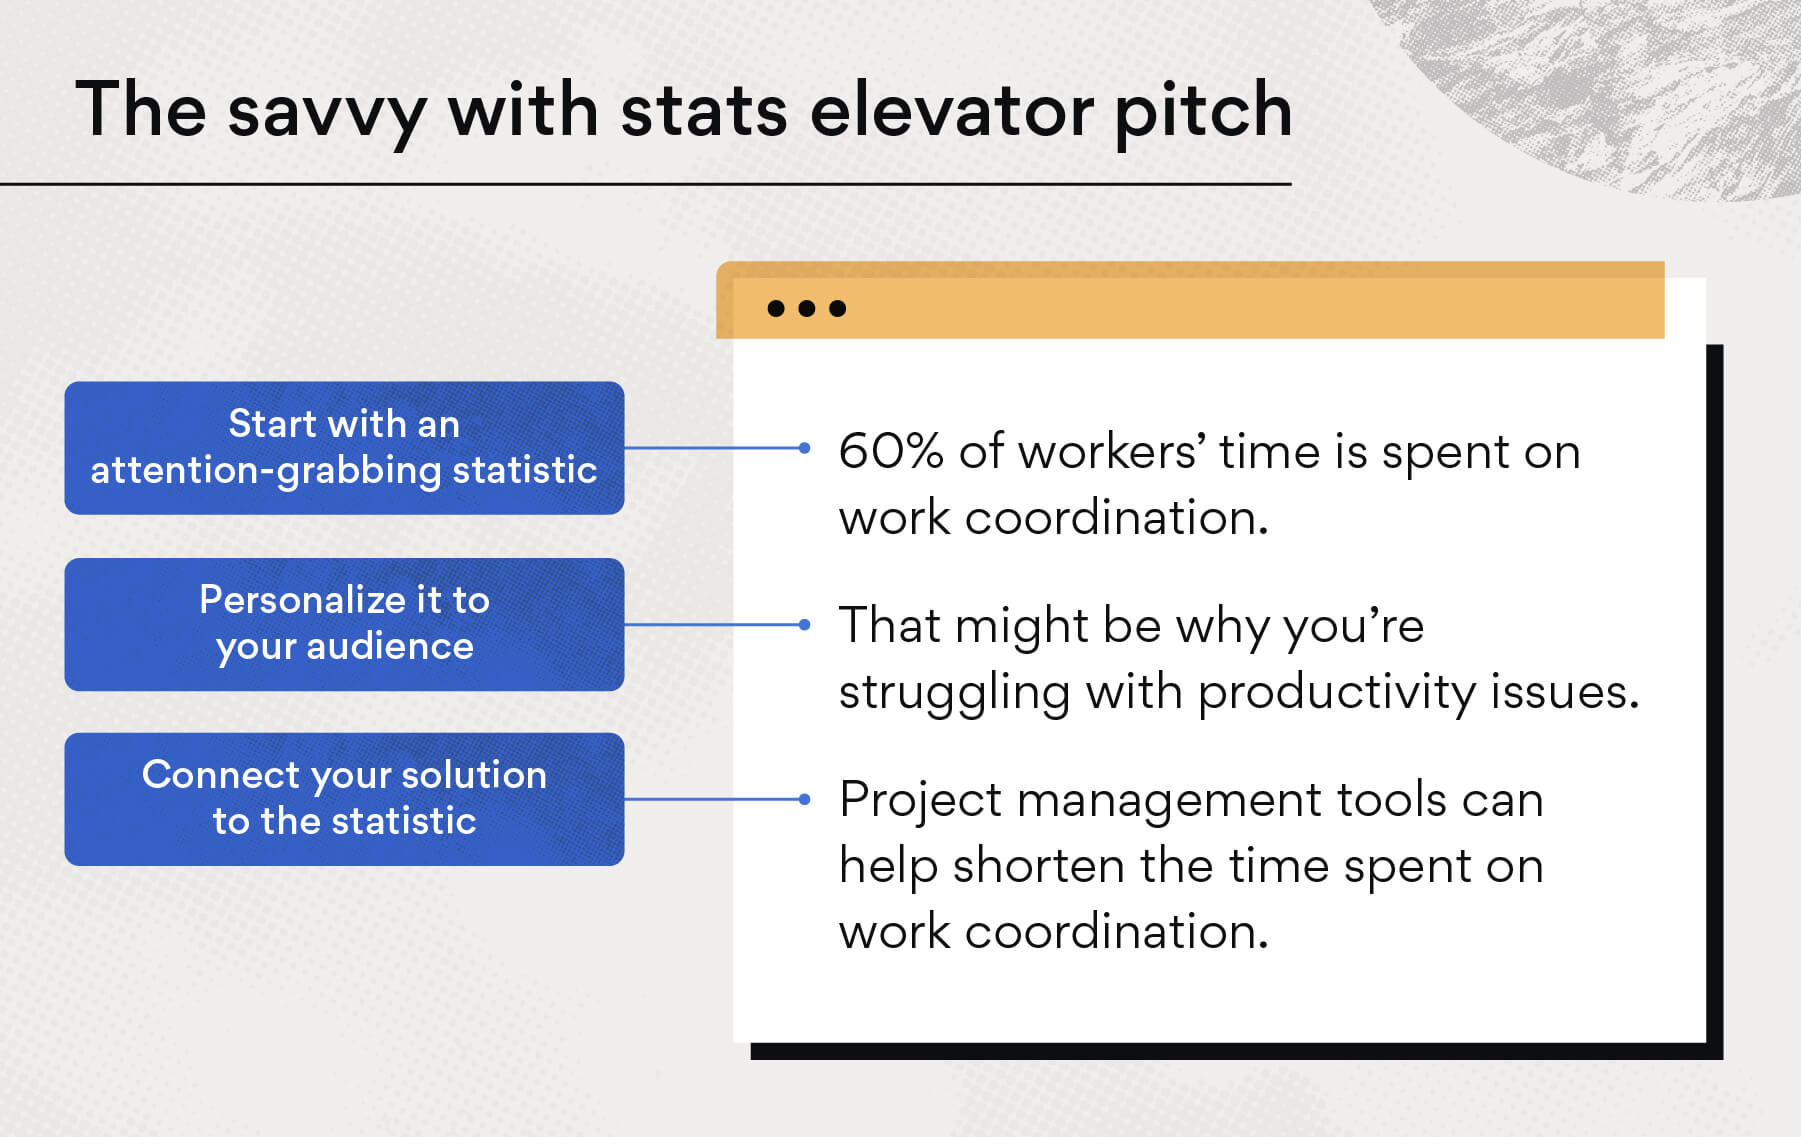 The savvy with stats elevator pitch